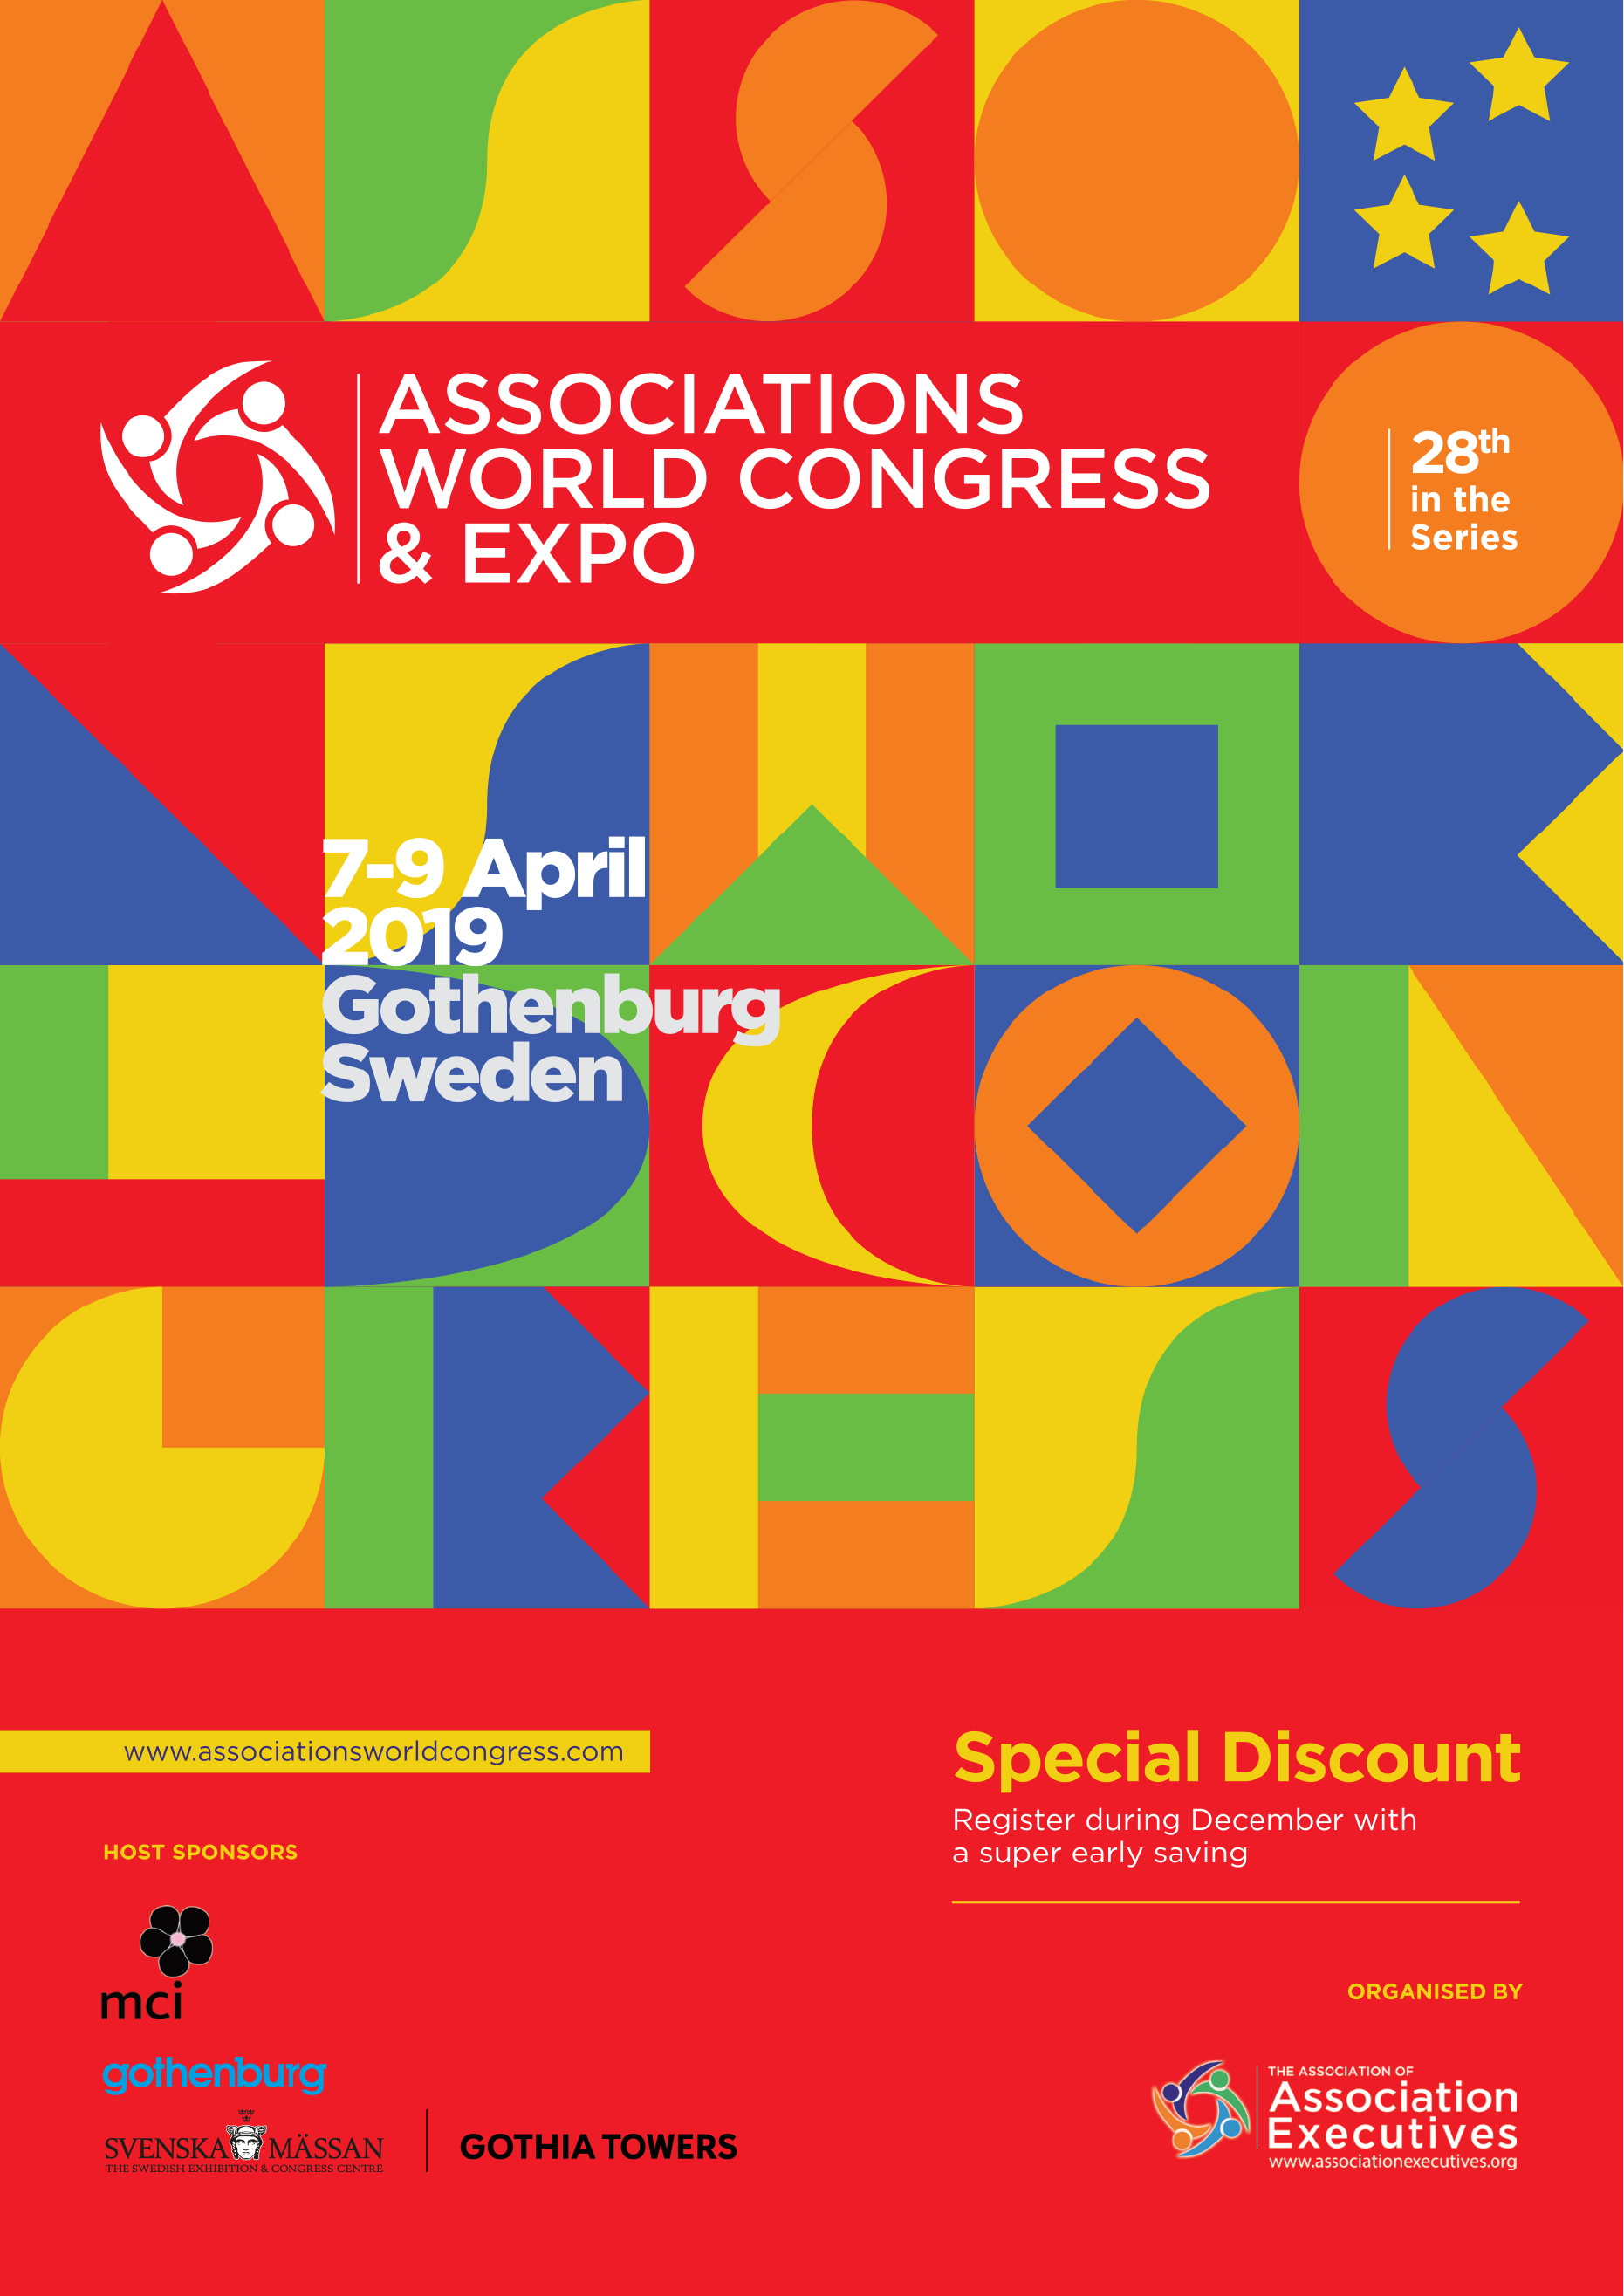 Associations World Congress & Expo